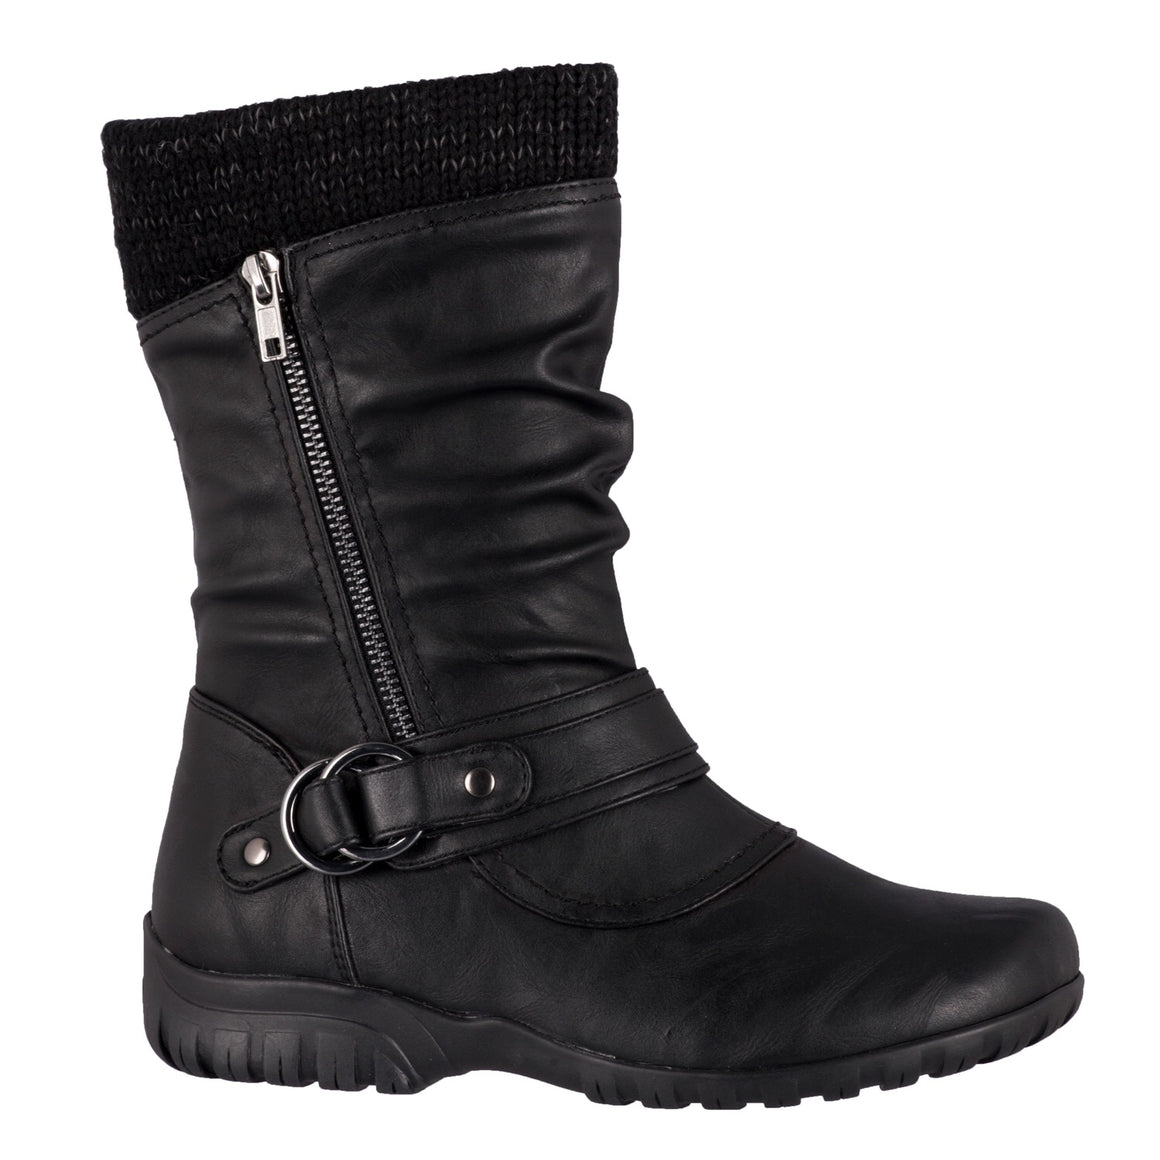 Reese Mid Calf Black Boot by Taxi